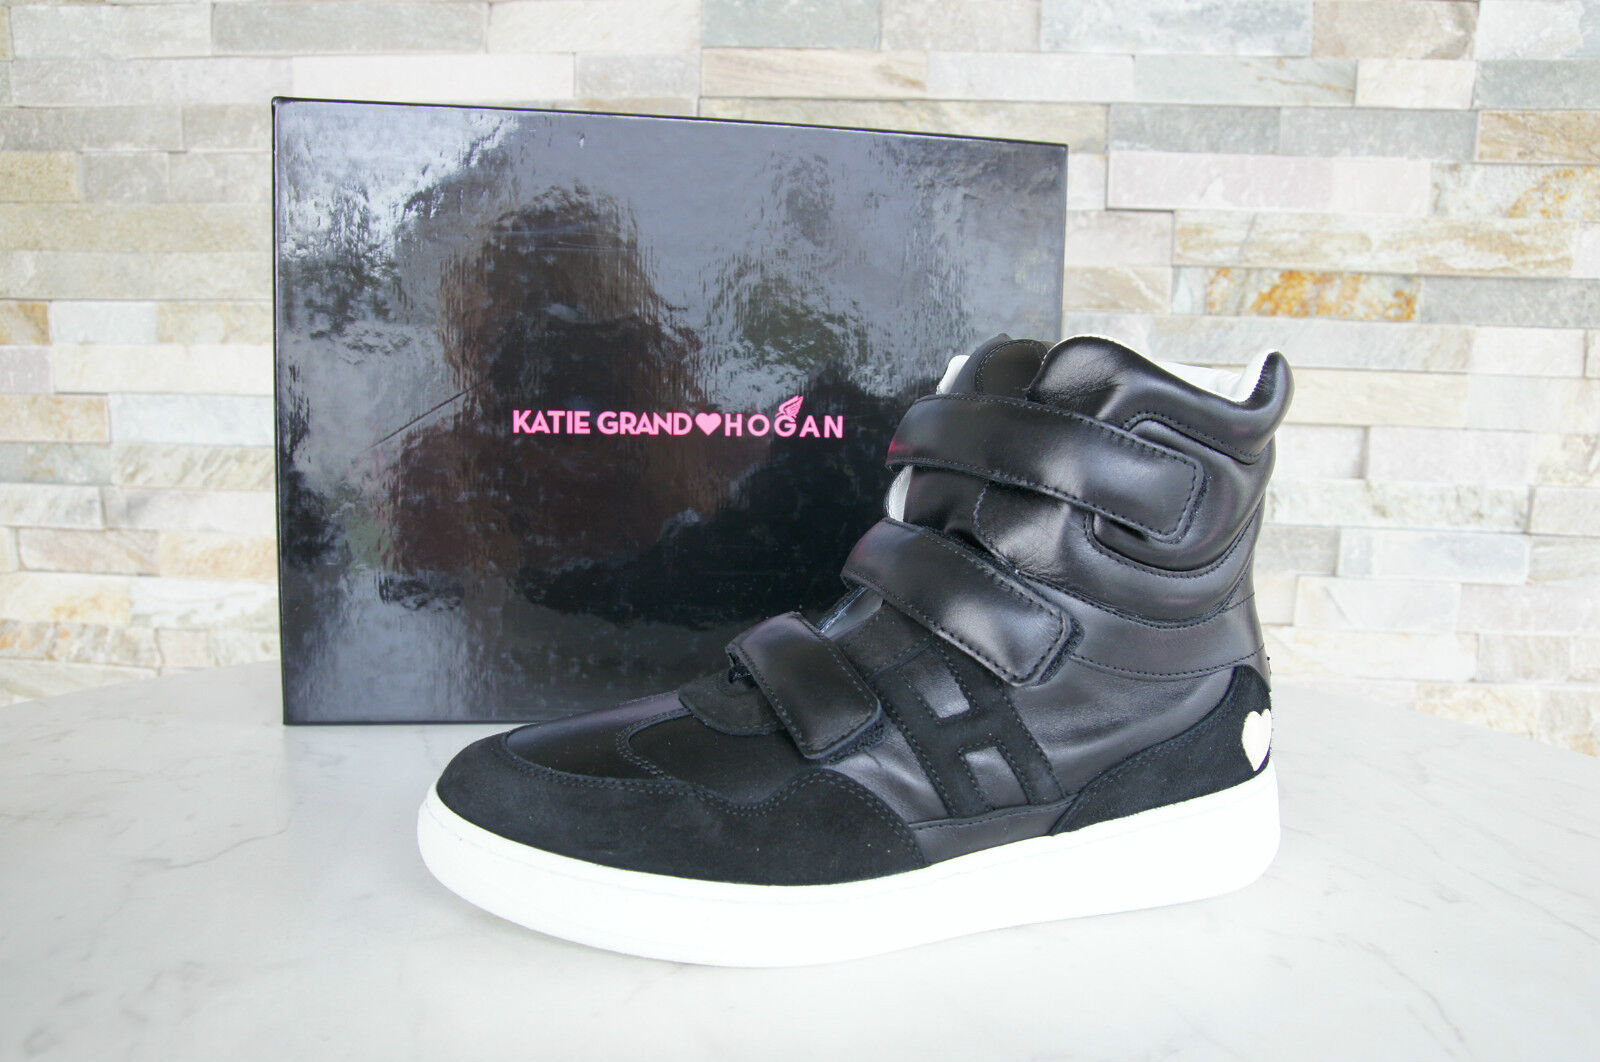 Katie Grand Hogan Tod ´S 37,5 High-Top Sneakers shoes Black New Previously